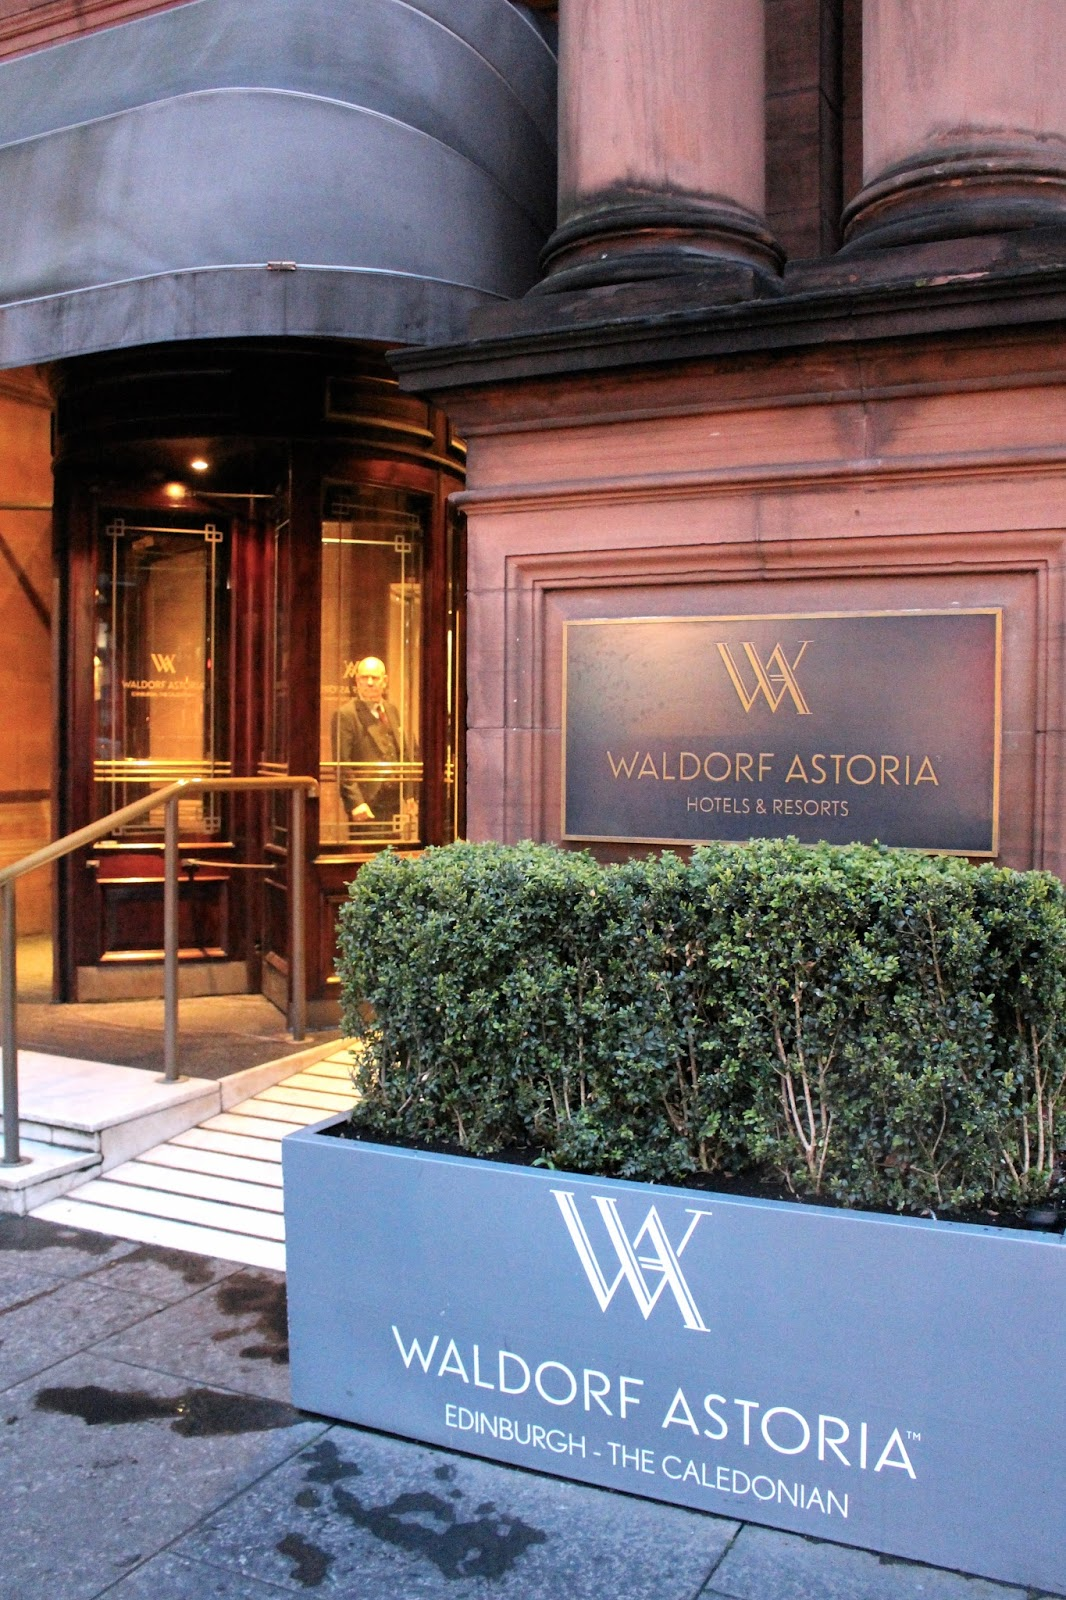 waldorf astoria edinburgh the caledonian entrance